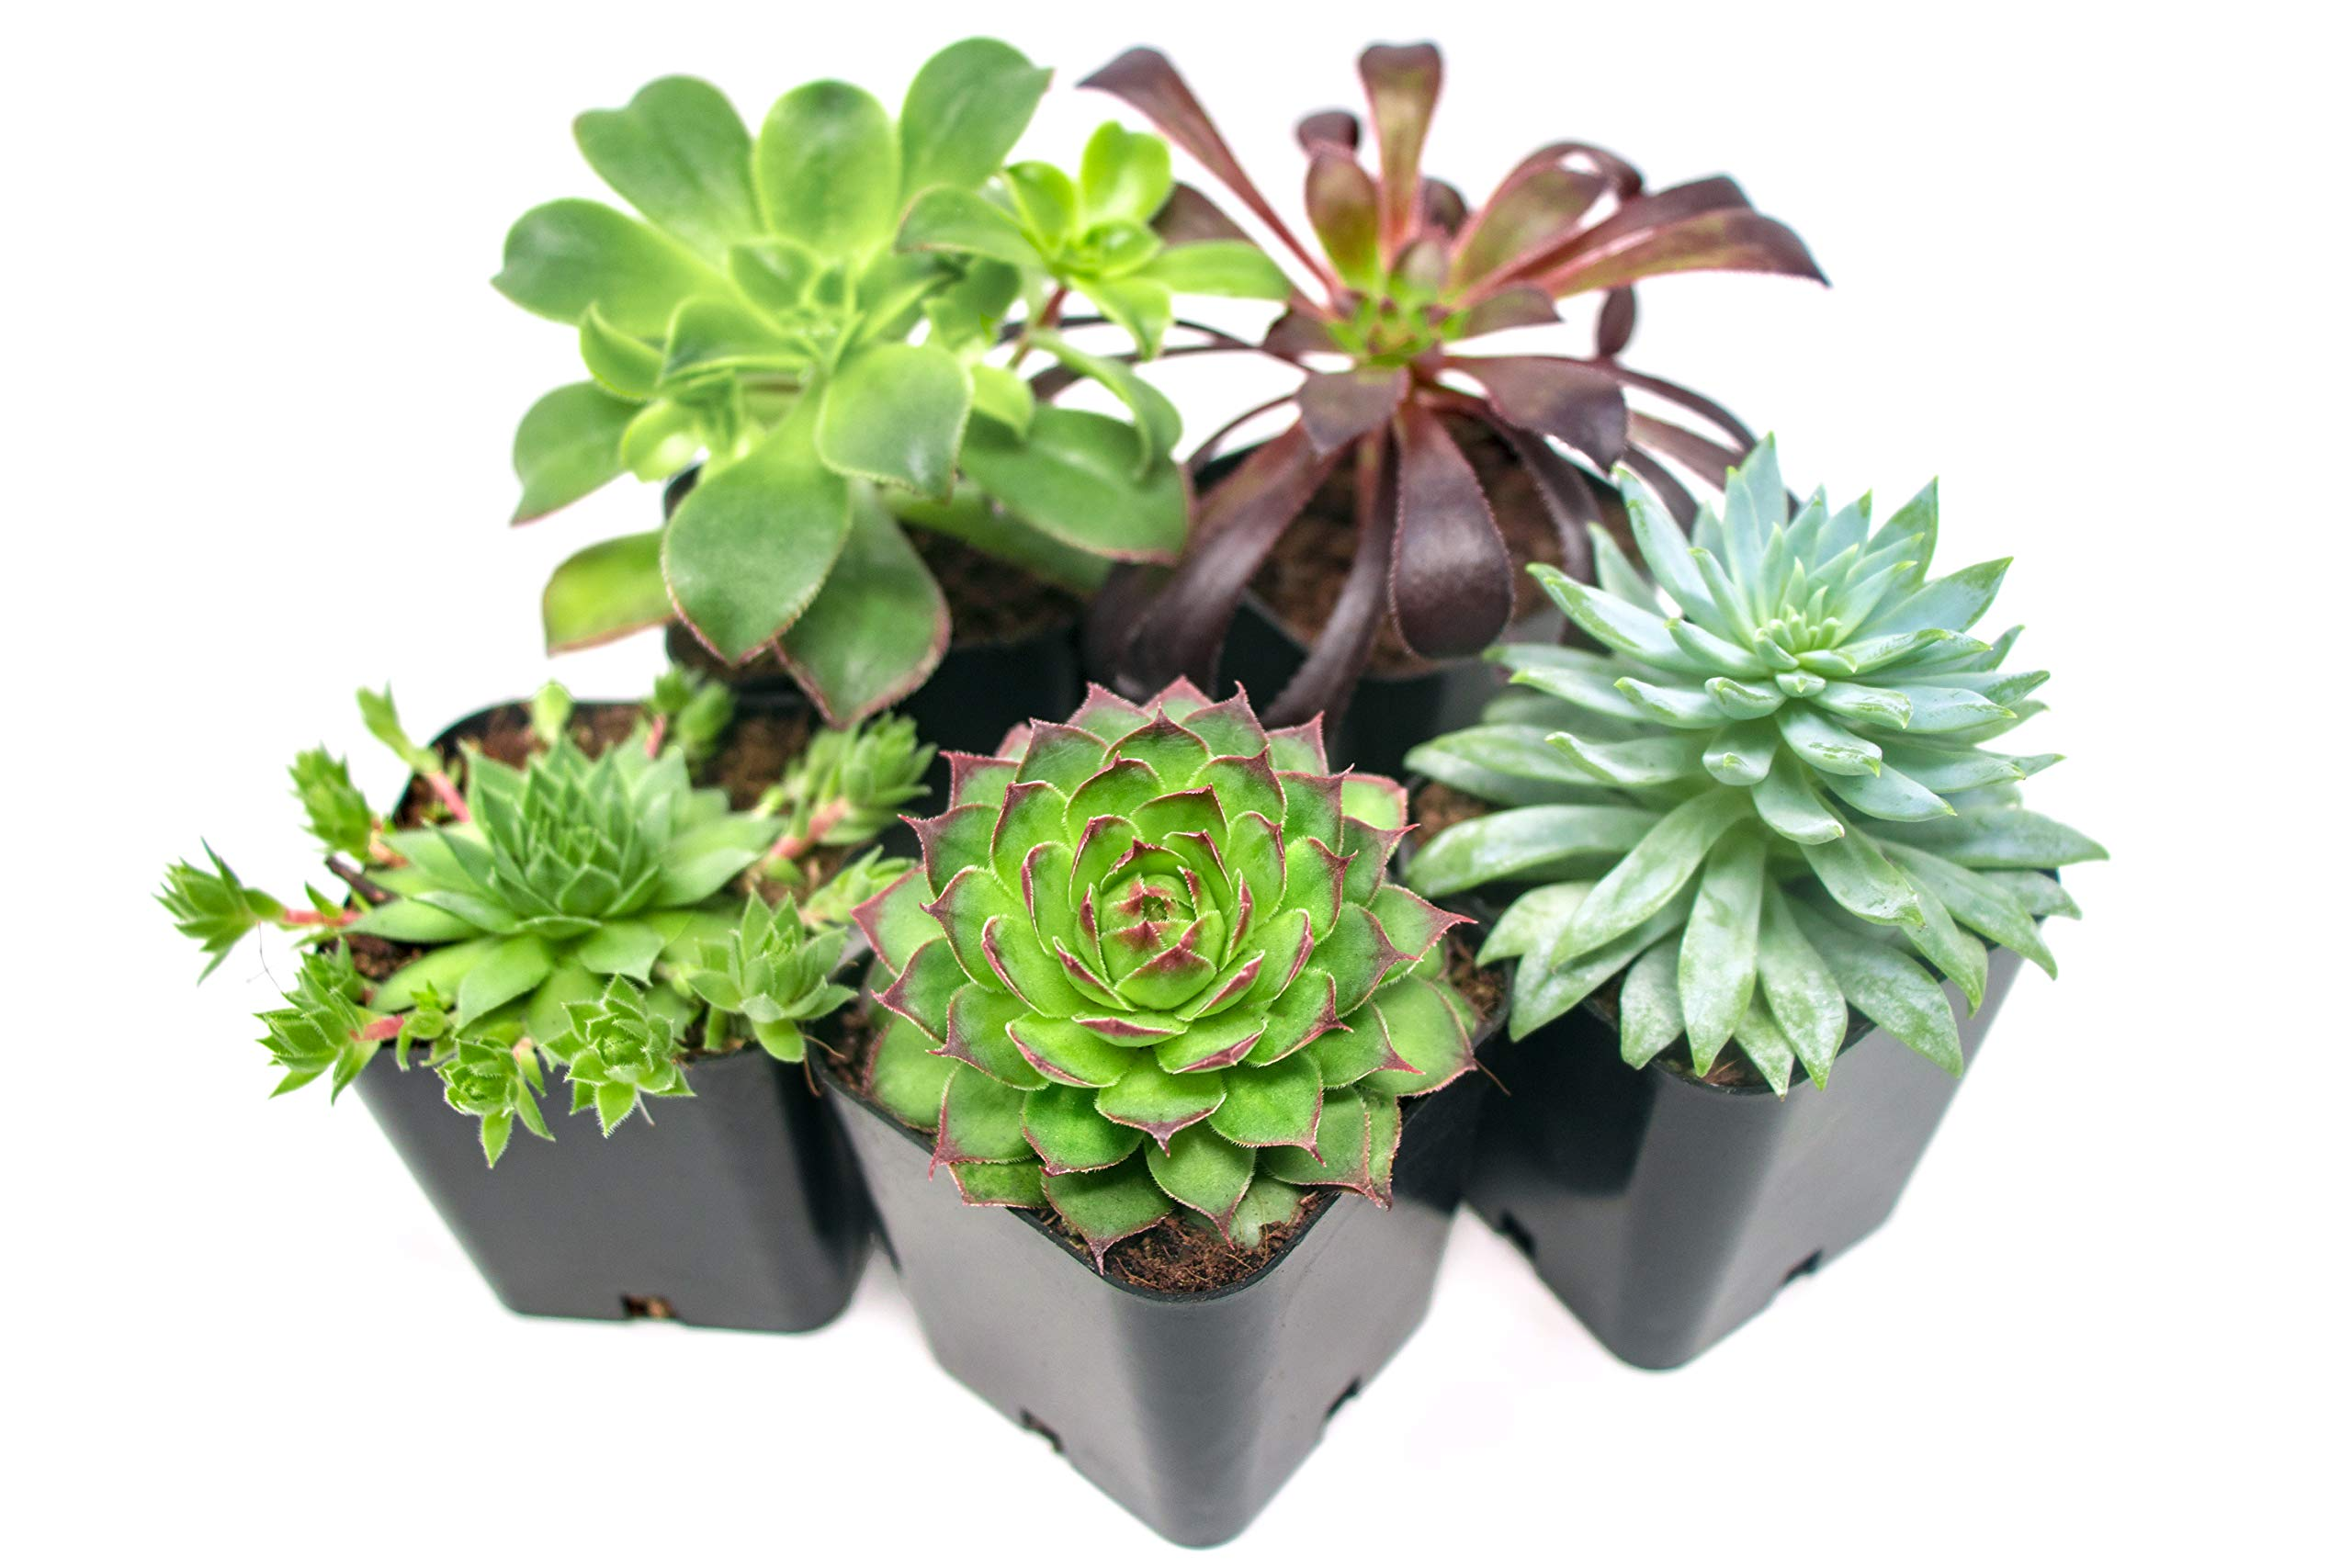 Succulent Plants (20 Pack) Fully Rooted in Planter Pots with Soil | Real Live Potted Succulents / Unique Indoor Cactus Decor by Plants for Pets 4 HAND SELECTED: Every pack of succulents we send is hand-picked. You will receive a unique collection of species that are fully rooted and similar to the product photos. Note that we rotate our nursery stock often, so the exact species we send changes every week. THE EASIEST HOUSE PLANTS: More appealing than artificial plastic or fake faux plants, and care is a cinch. If you think you can't keep houseplants alive, you're wrong; our succulents don't require fertilizer and can be planted in a decorative pot of your choice within seconds. DIY HOME DECOR: The possibilities are only limited by your imagination; display them in a plant holder, a wall mount, a geometric glass vase, or even in a live wreath. Because of their amazingly low care requirements, they can even make the perfect desk centerpiece for your office.